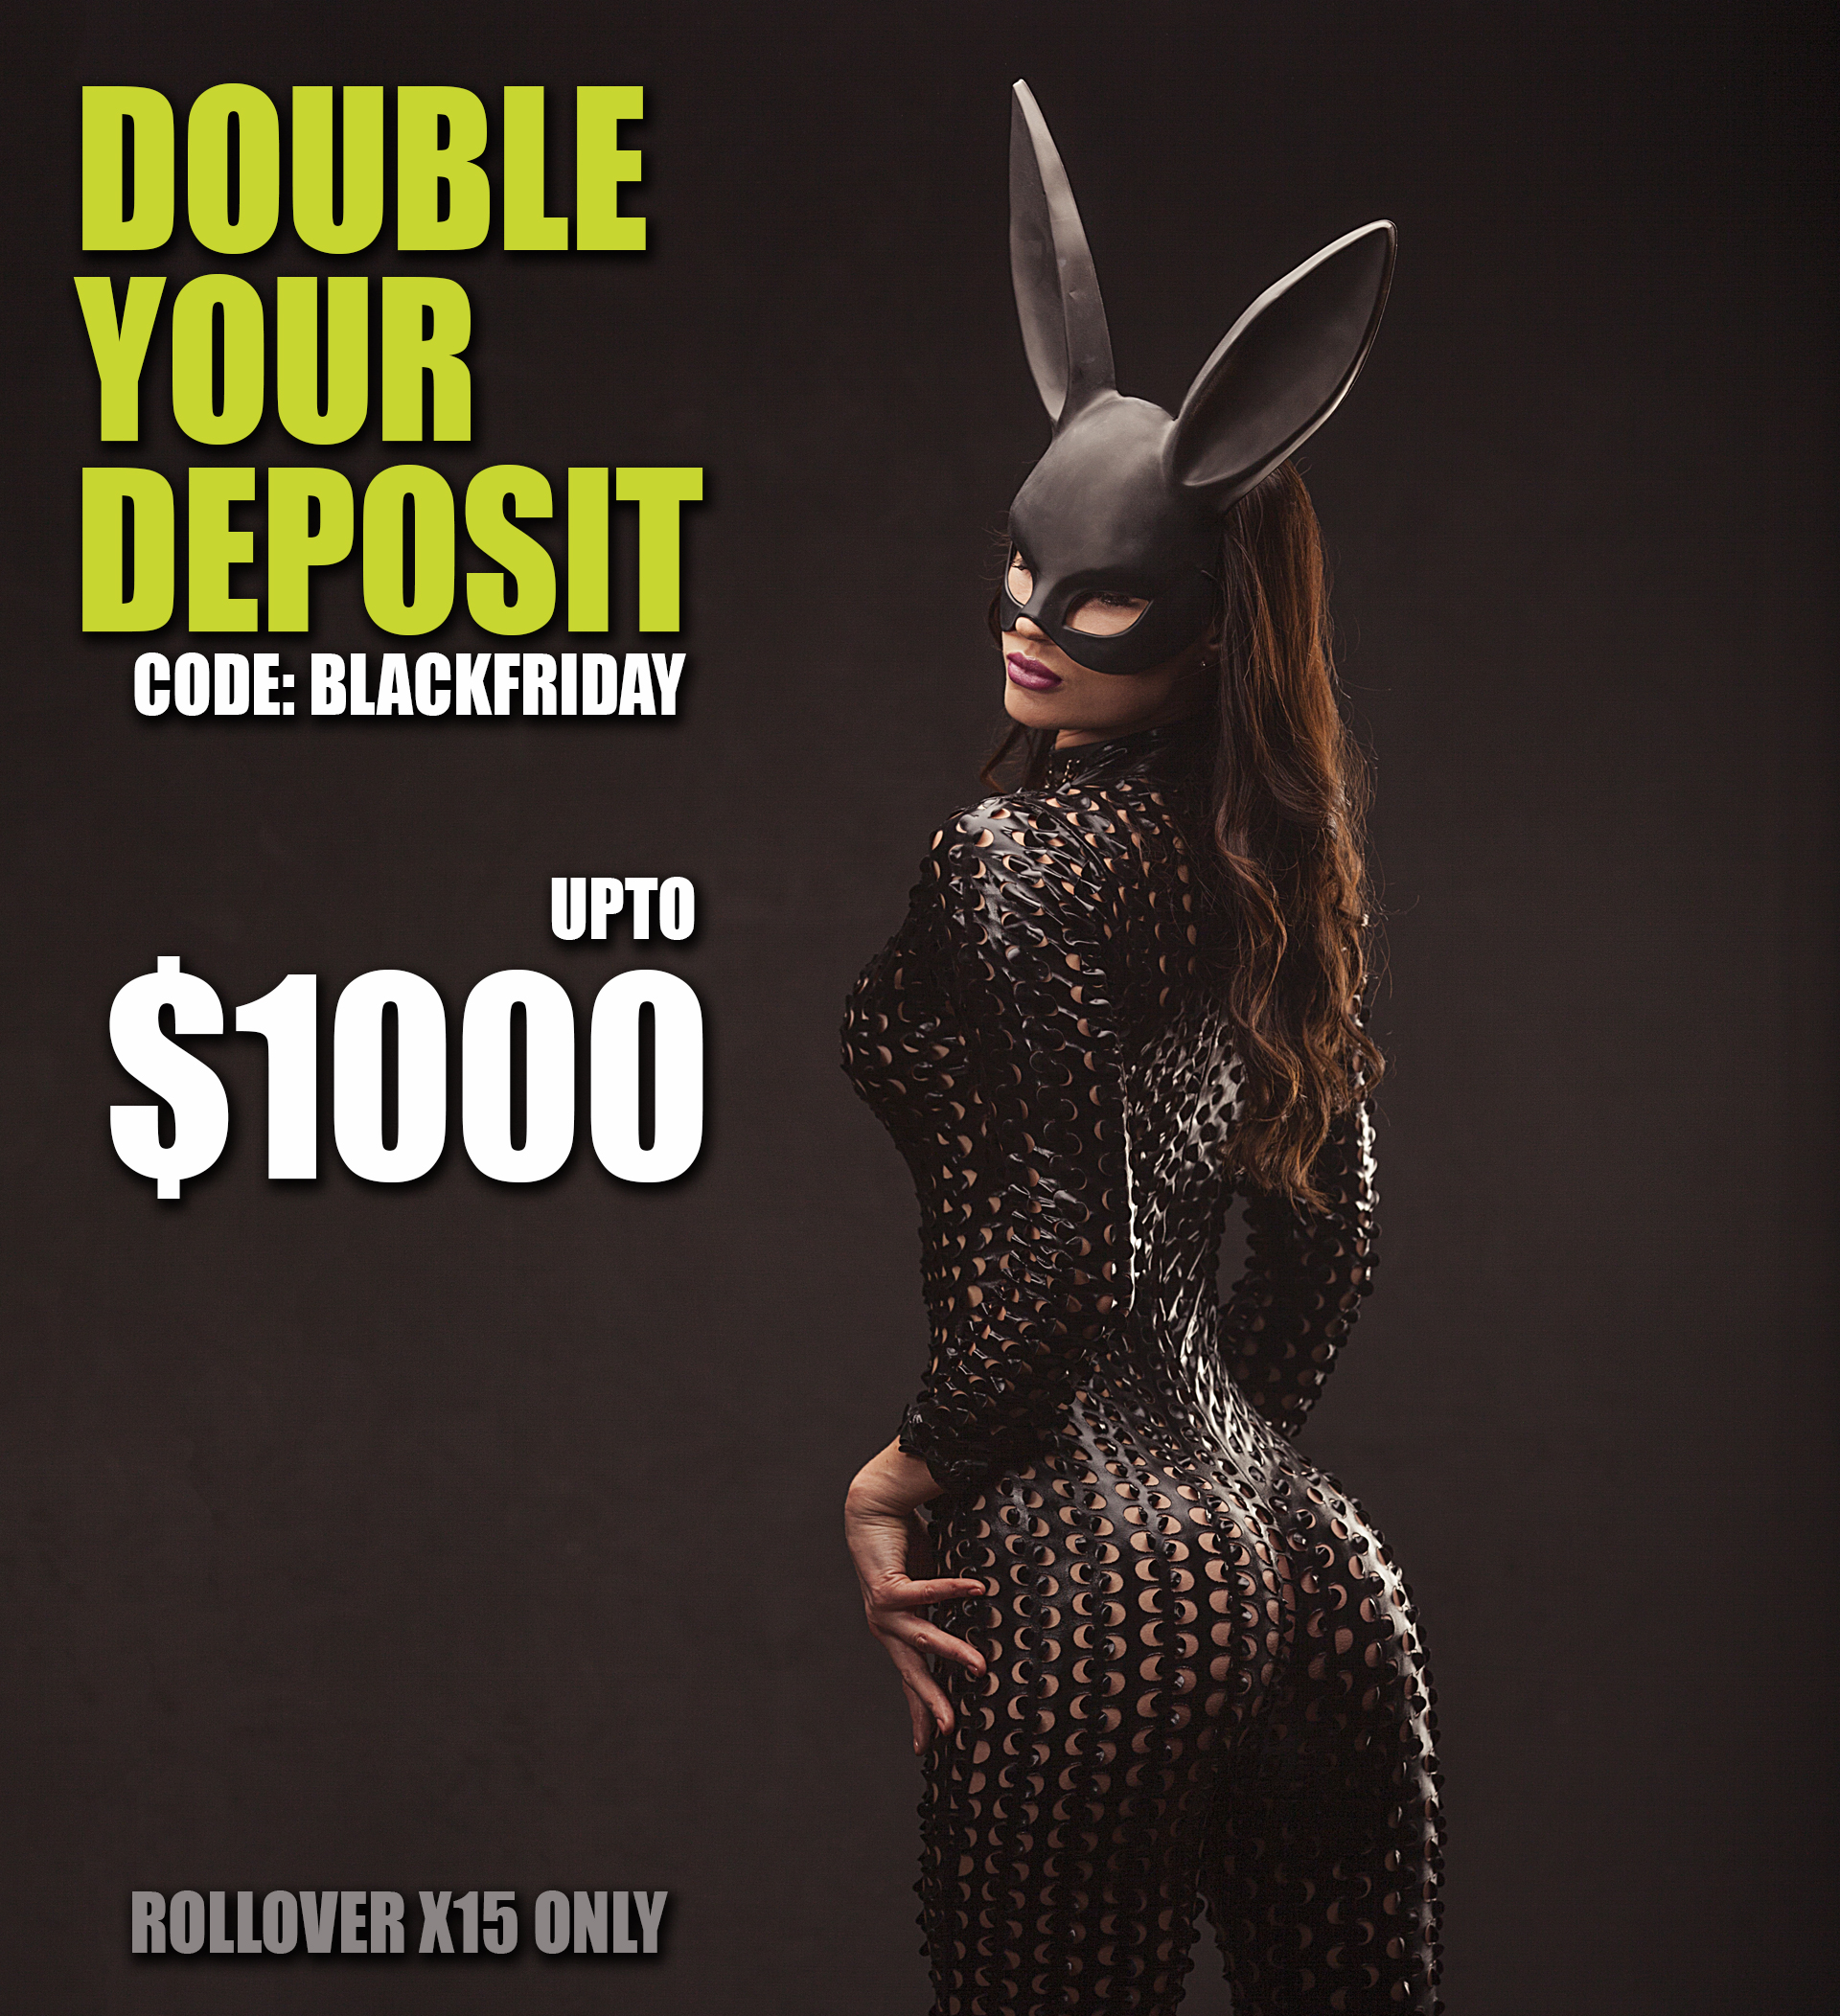 sitename-we-double-your-deposit-upto-1000-code-blackfriday-play-with-the-total-amount